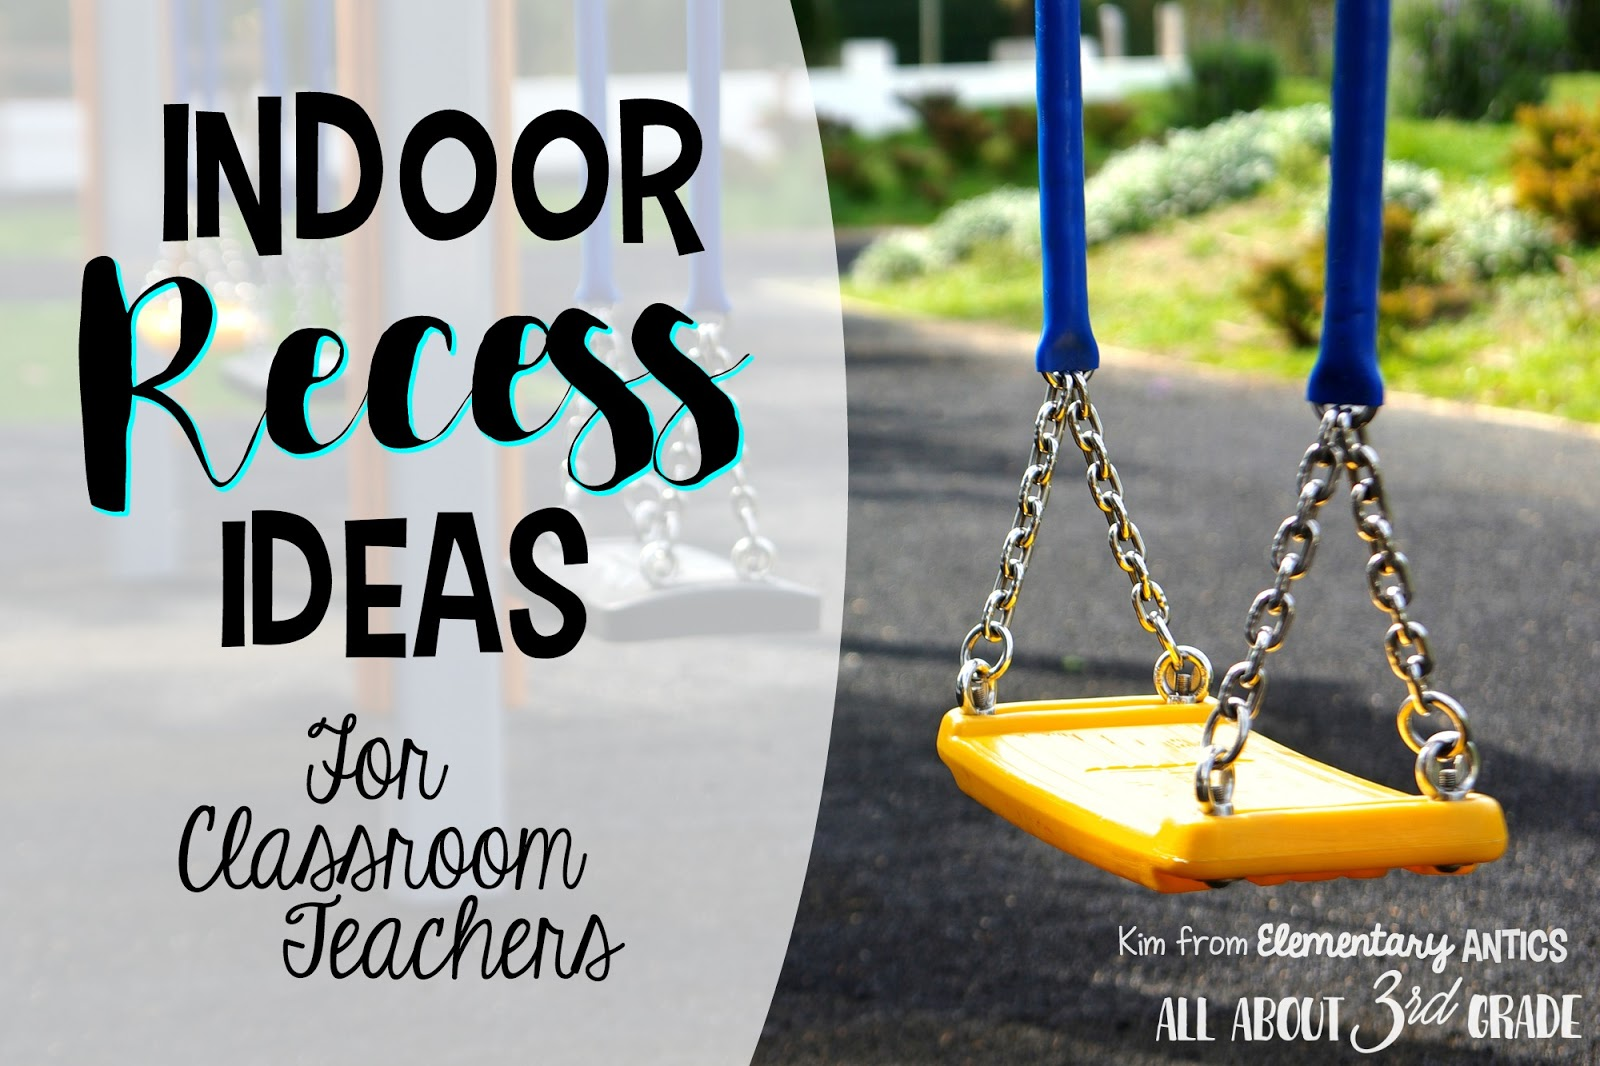 This is a great list of ideas for indoor recess time in your classroom!